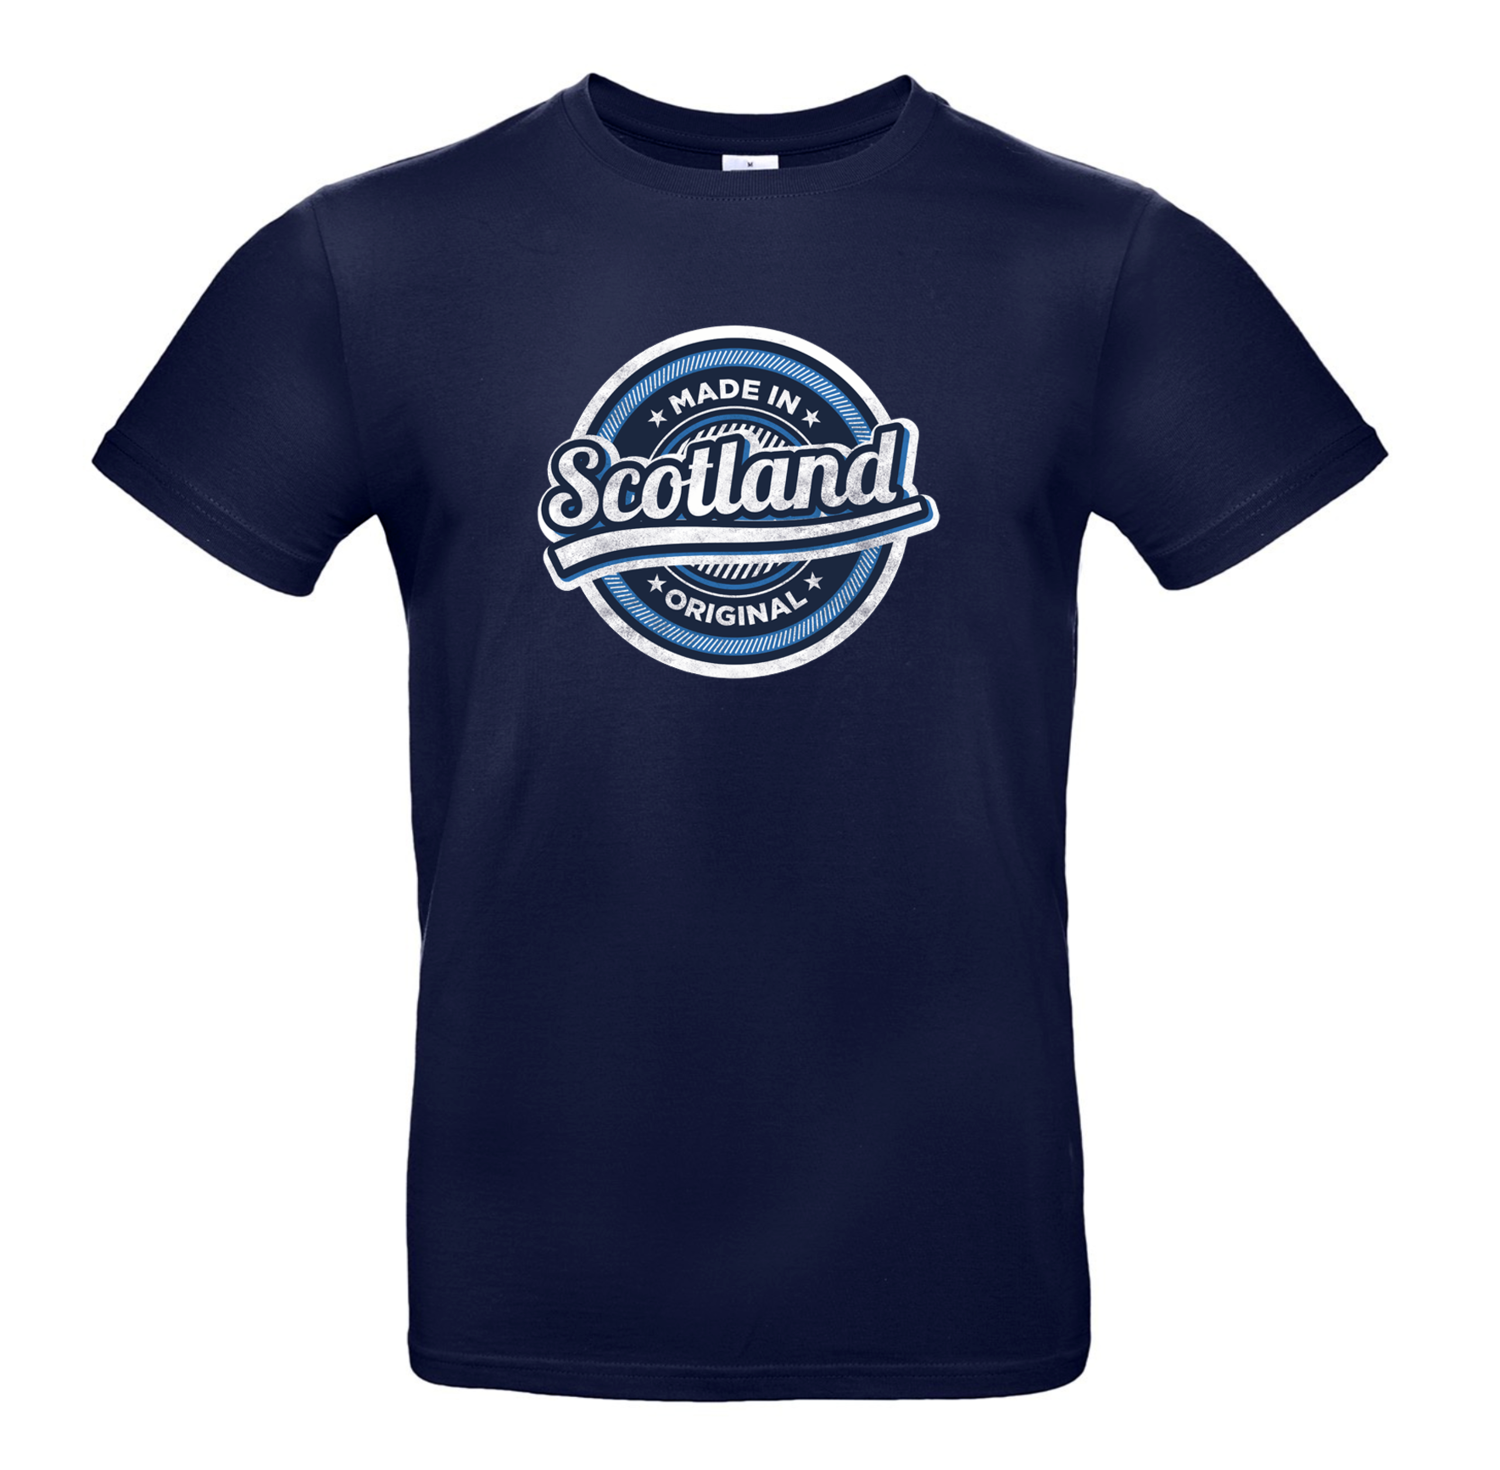 Made in Scotland – blue graphic